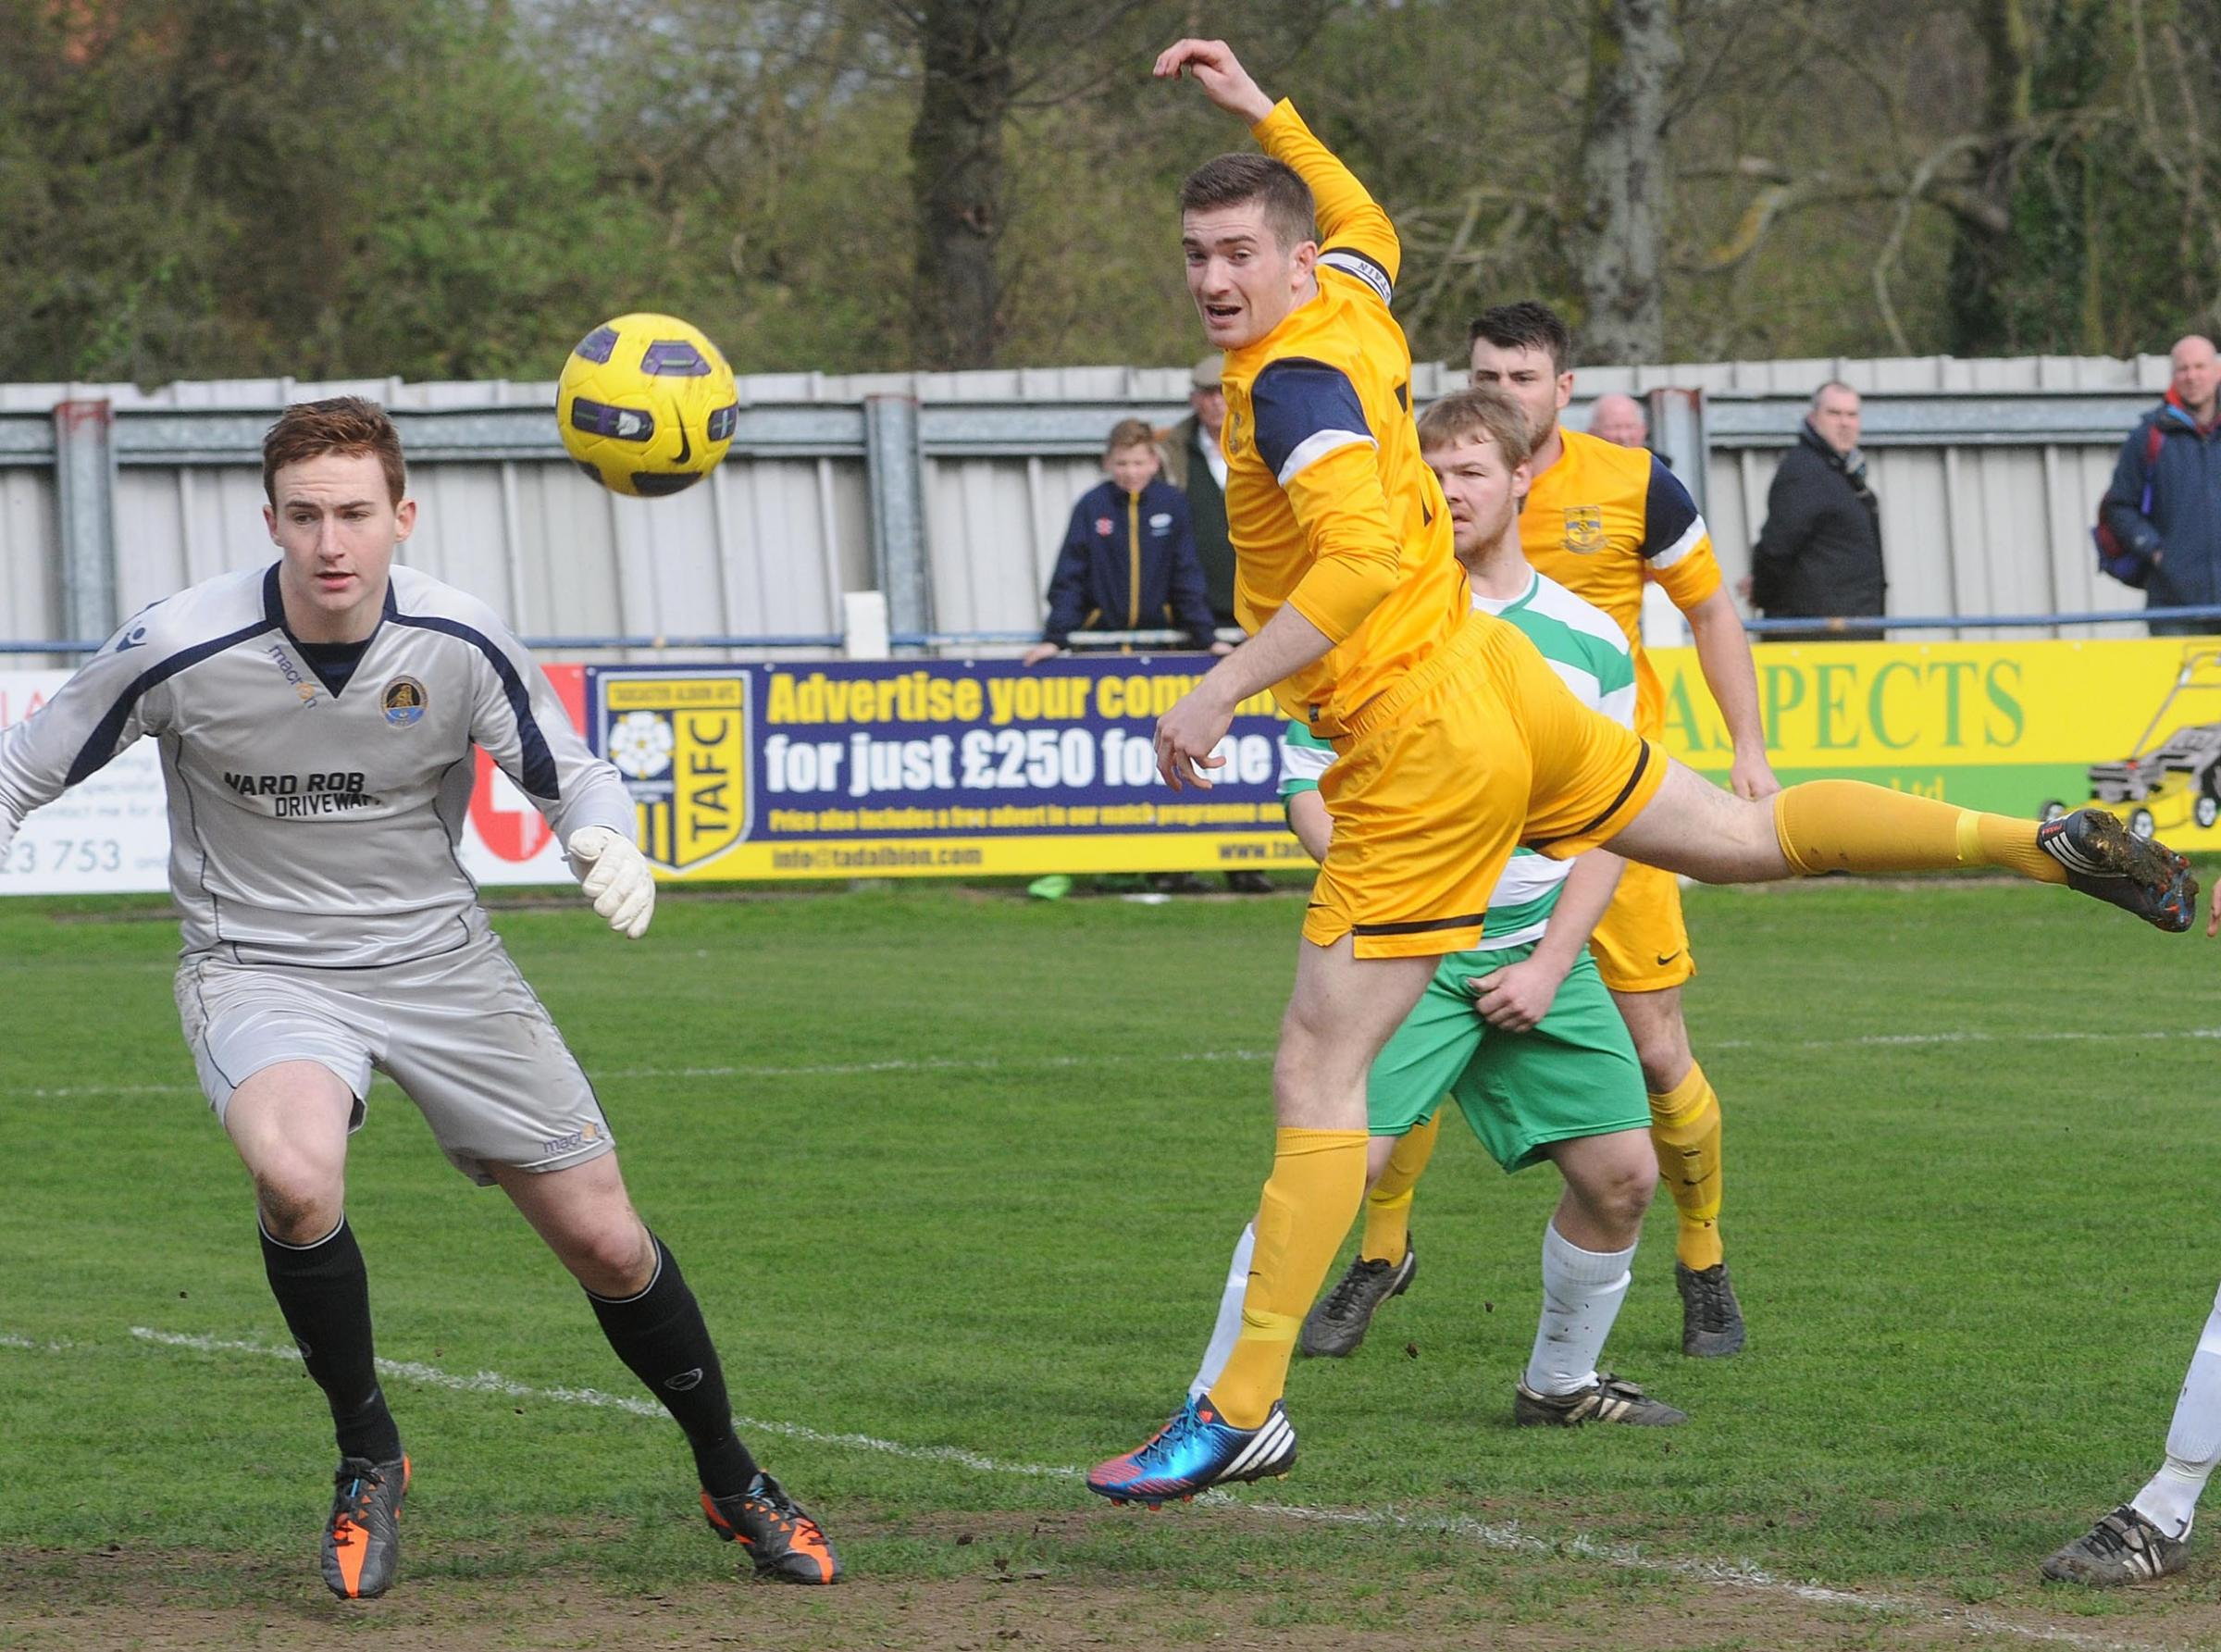 Tadcaster Albion (yellow) v Glasshaughton Welfare (green). Pictured